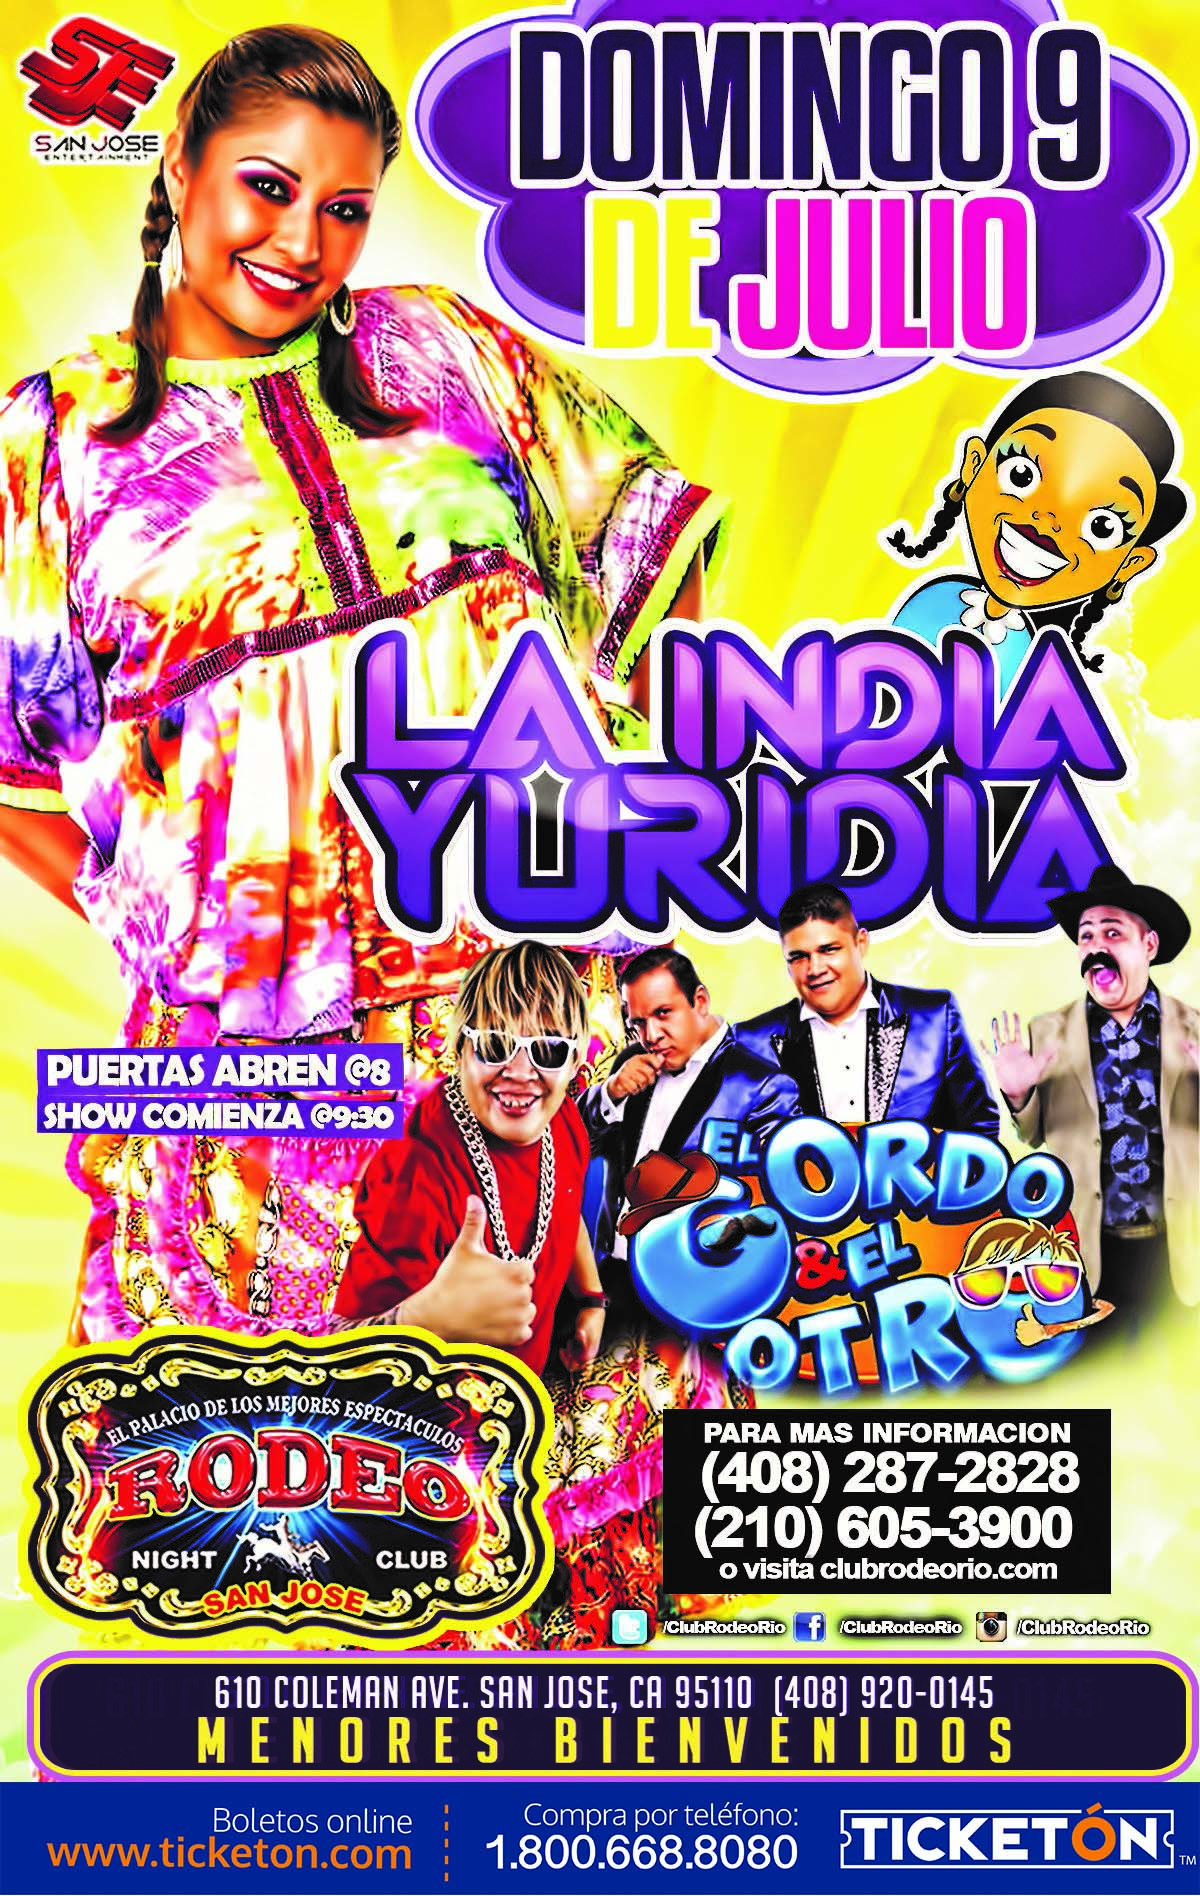 La India Yuridia San Jose Tickets Boletos El Rodeo